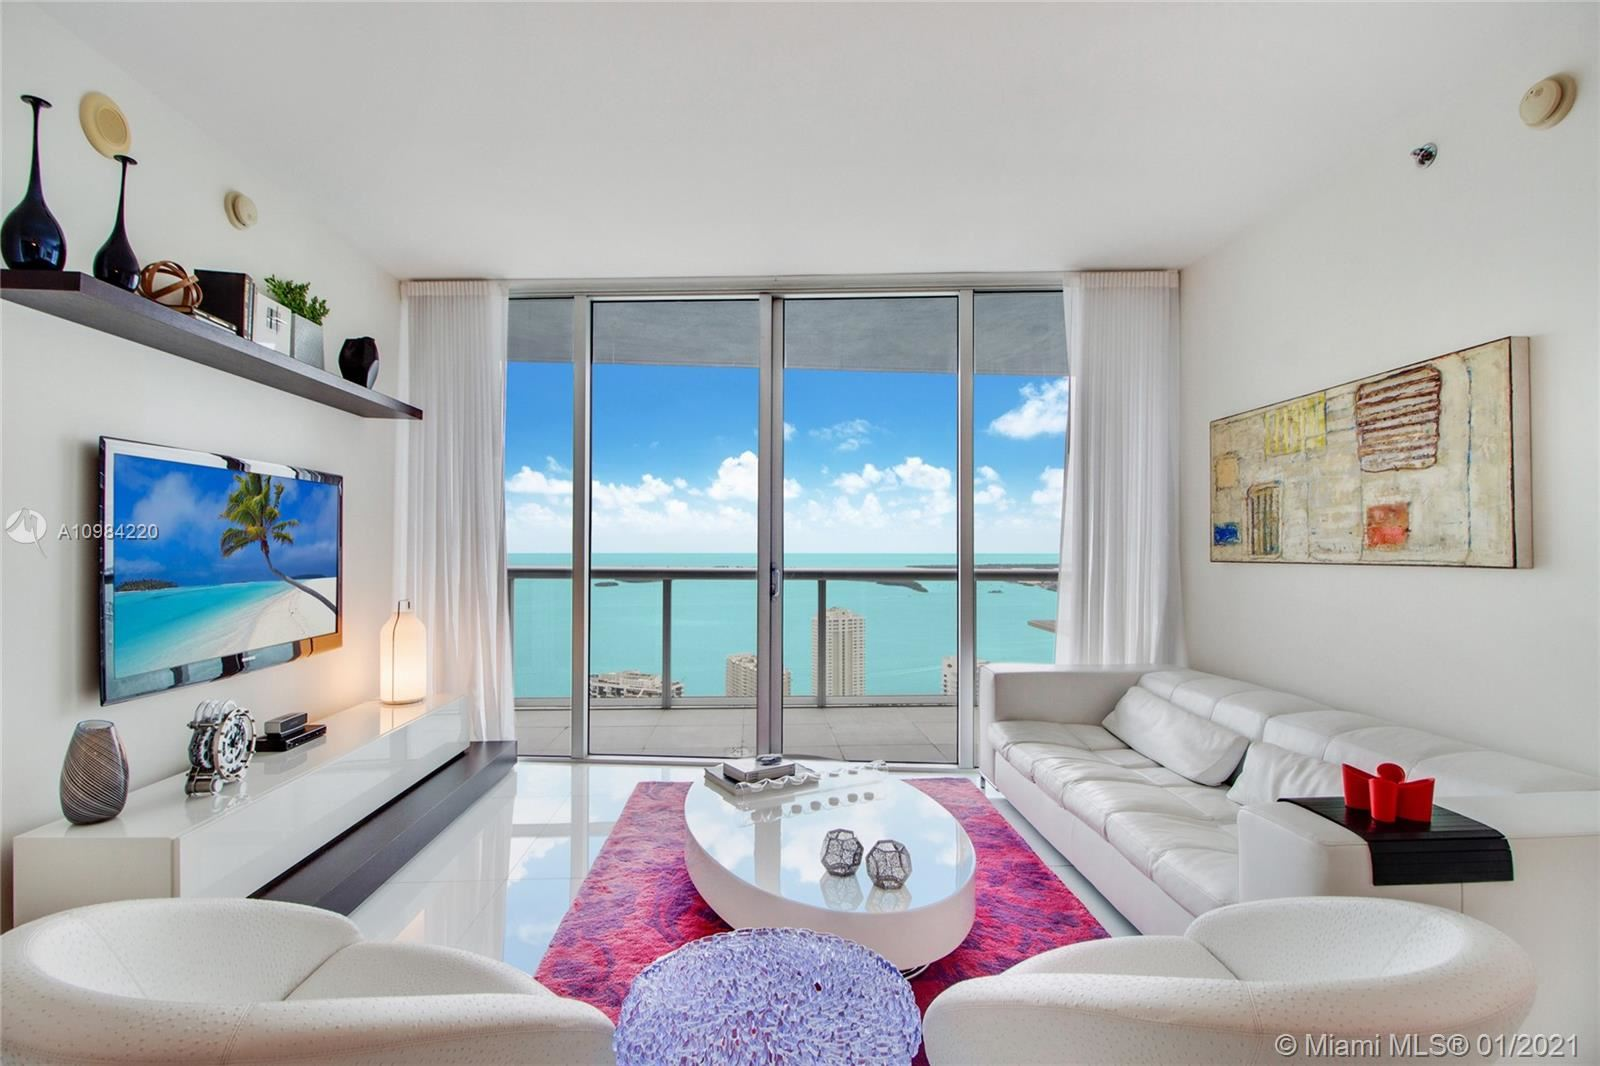 465 Brickell Ave #4603, Miami, FL 33131 - #: A10984220